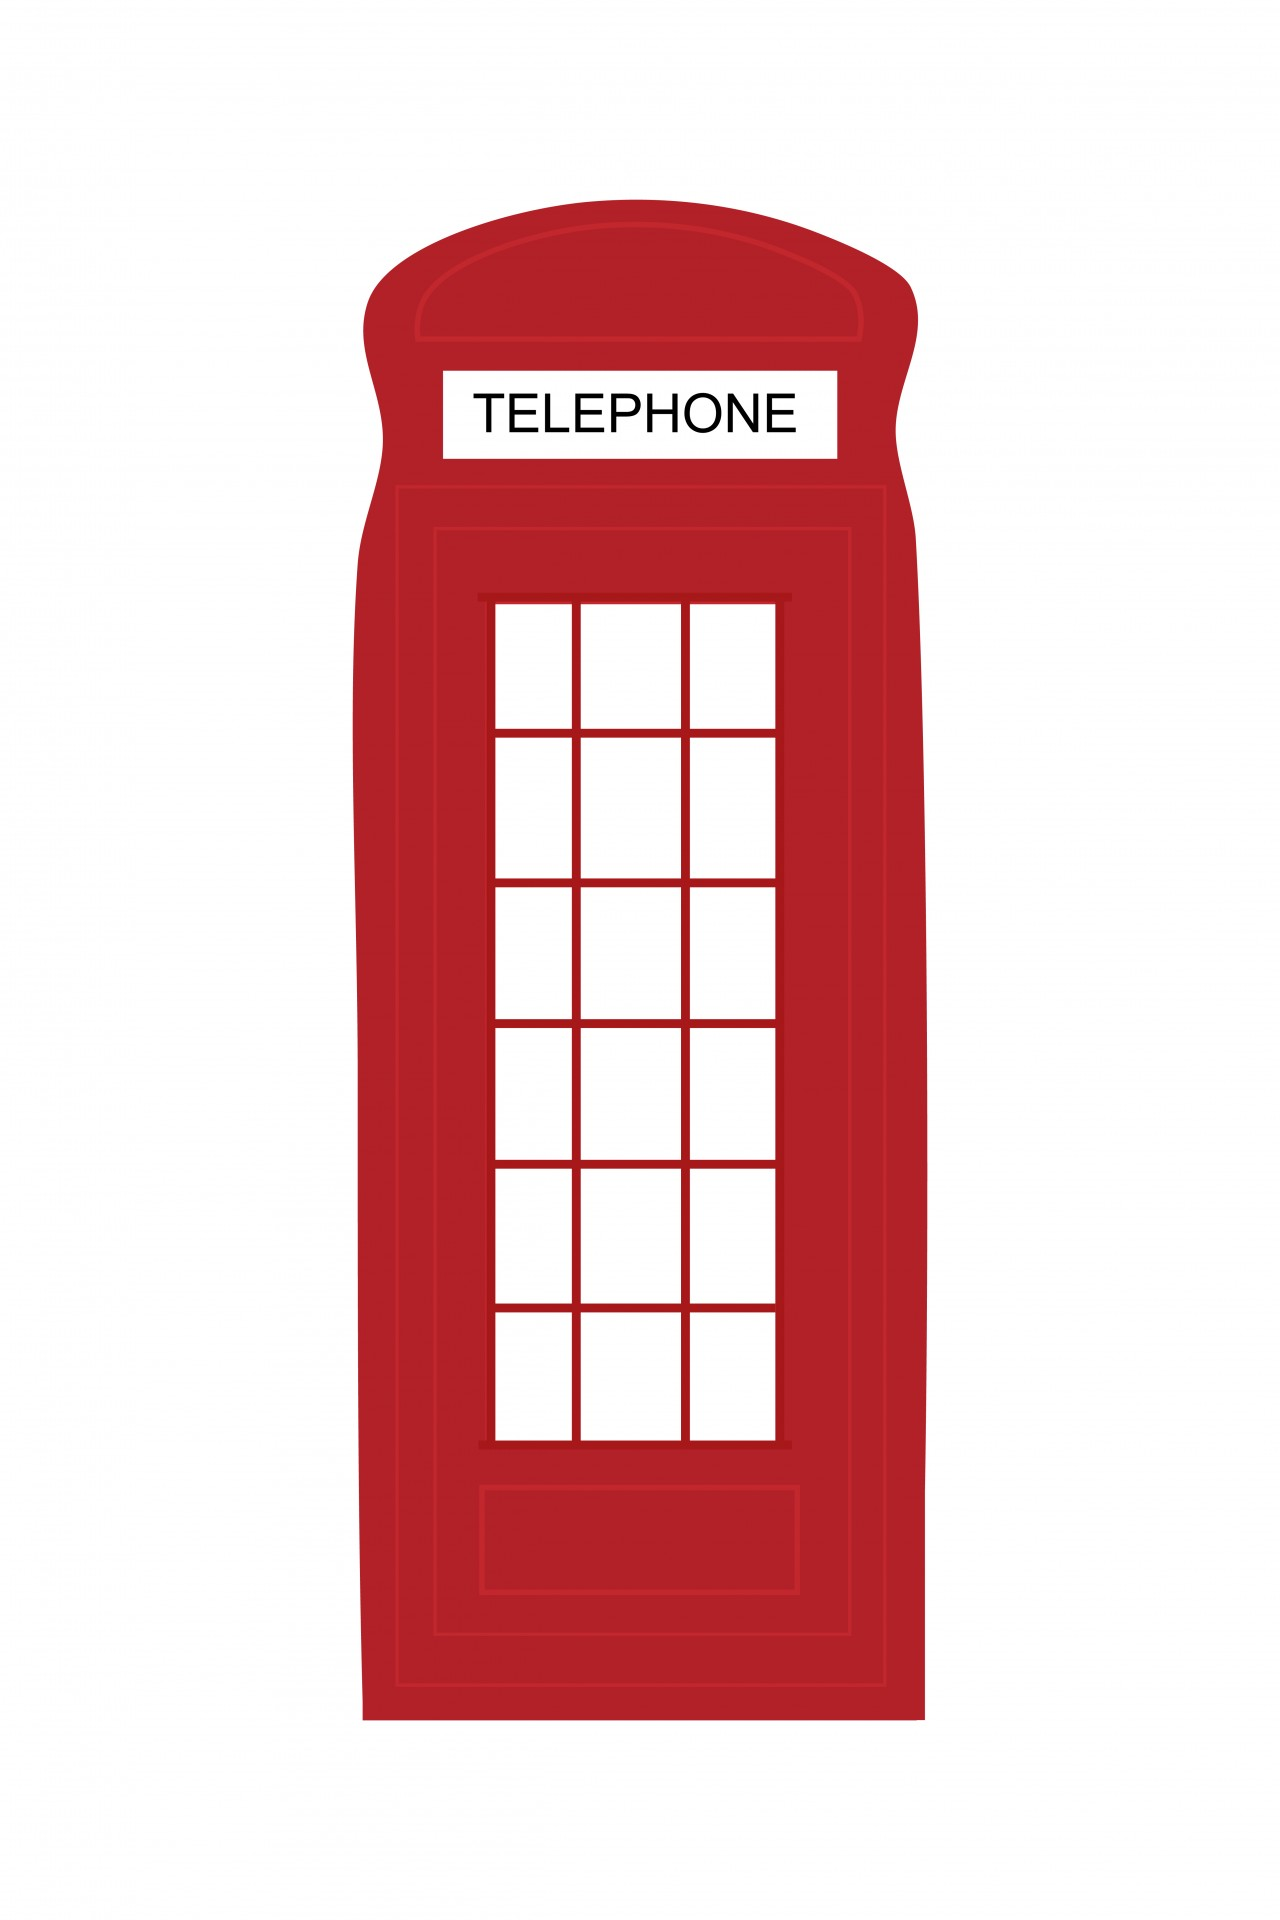 London Telephone Box Clipart.